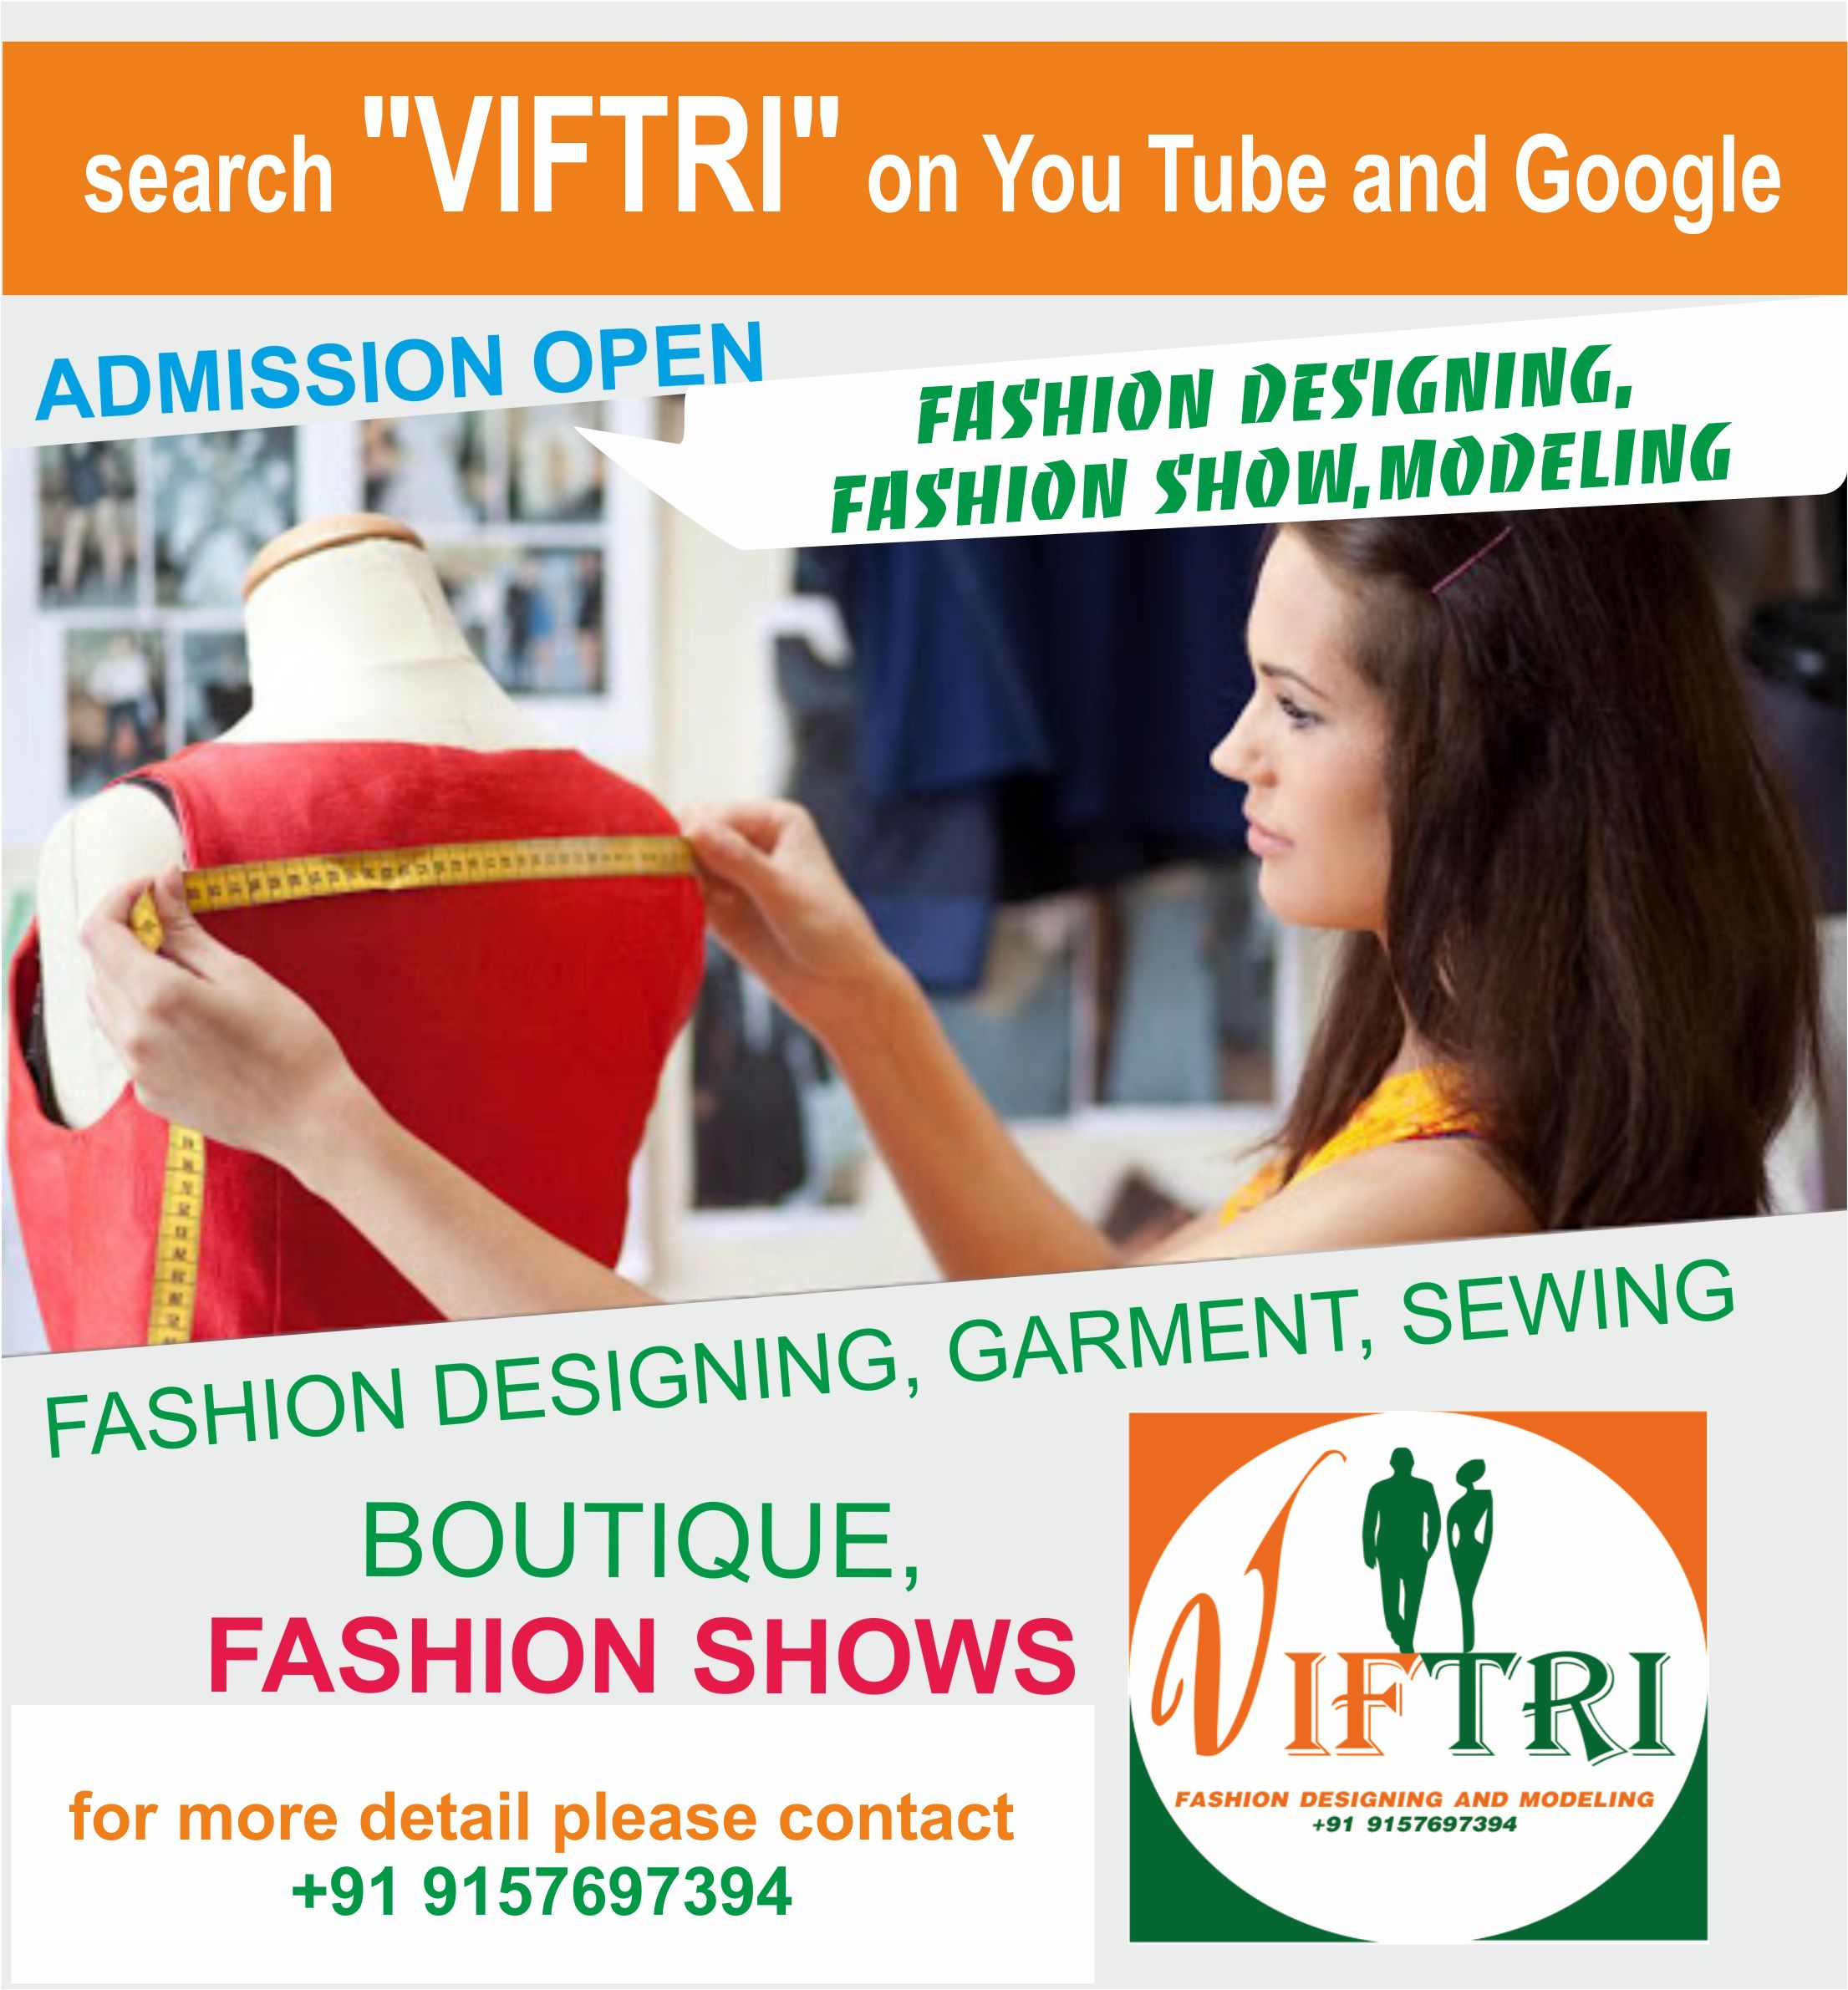 Diploma In Fashion Designing In Ahmedabad Diploma In Fashion Designing After 10th 3 Year Di In 2020 Diploma In Fashion Designing Fashion Designing Course What To Study